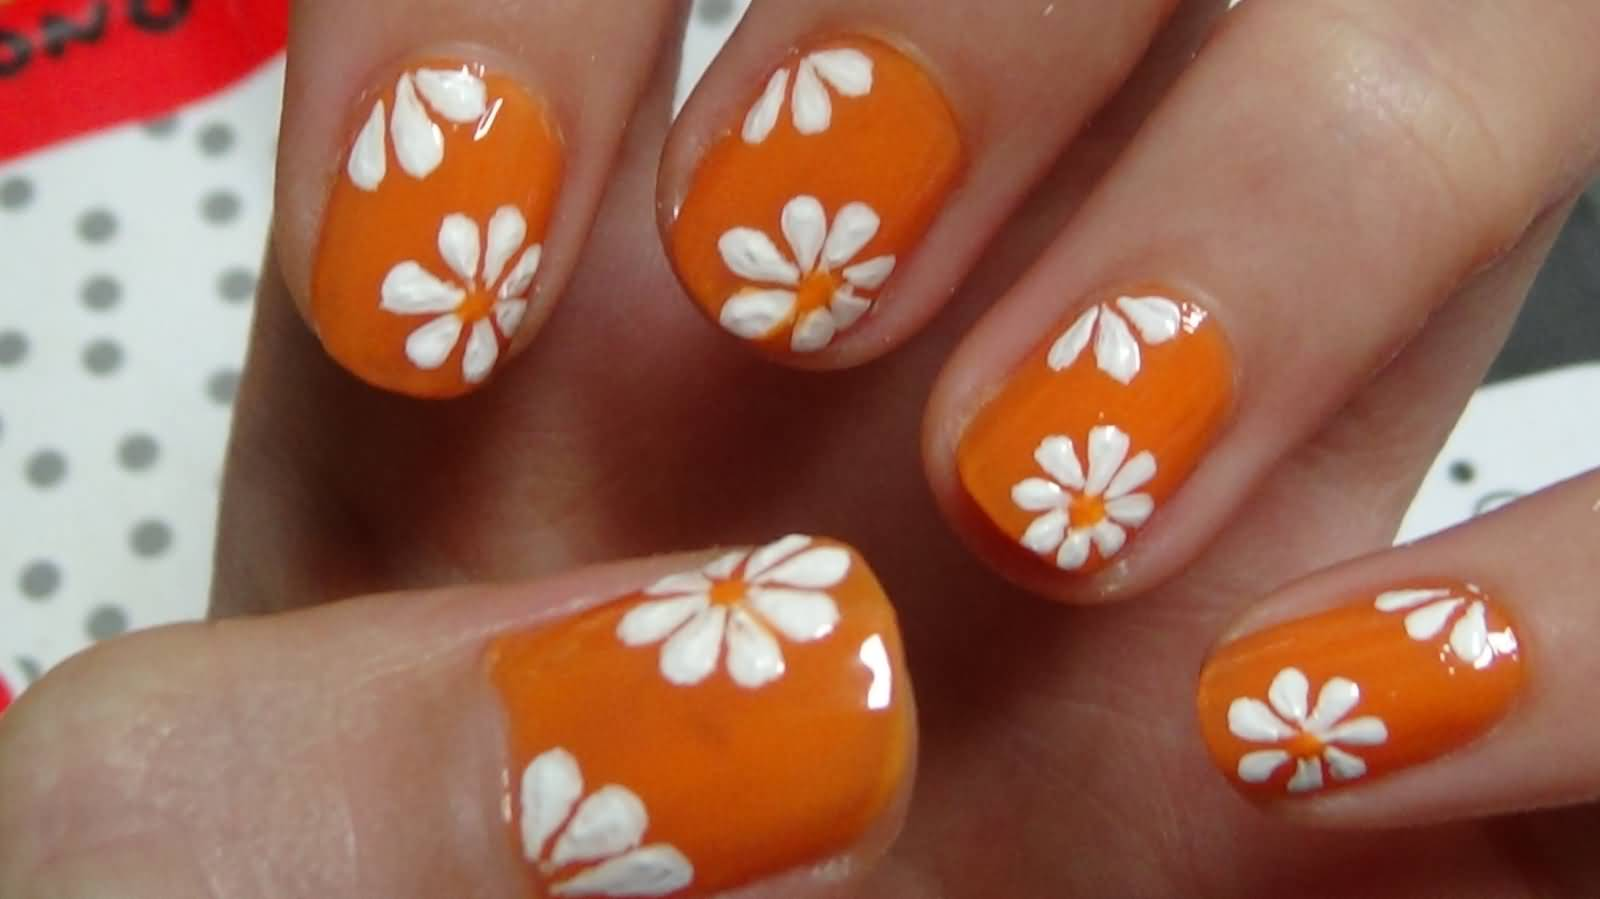 Orange Nails With White Daisy Flowers Nail Art Tutorial Video